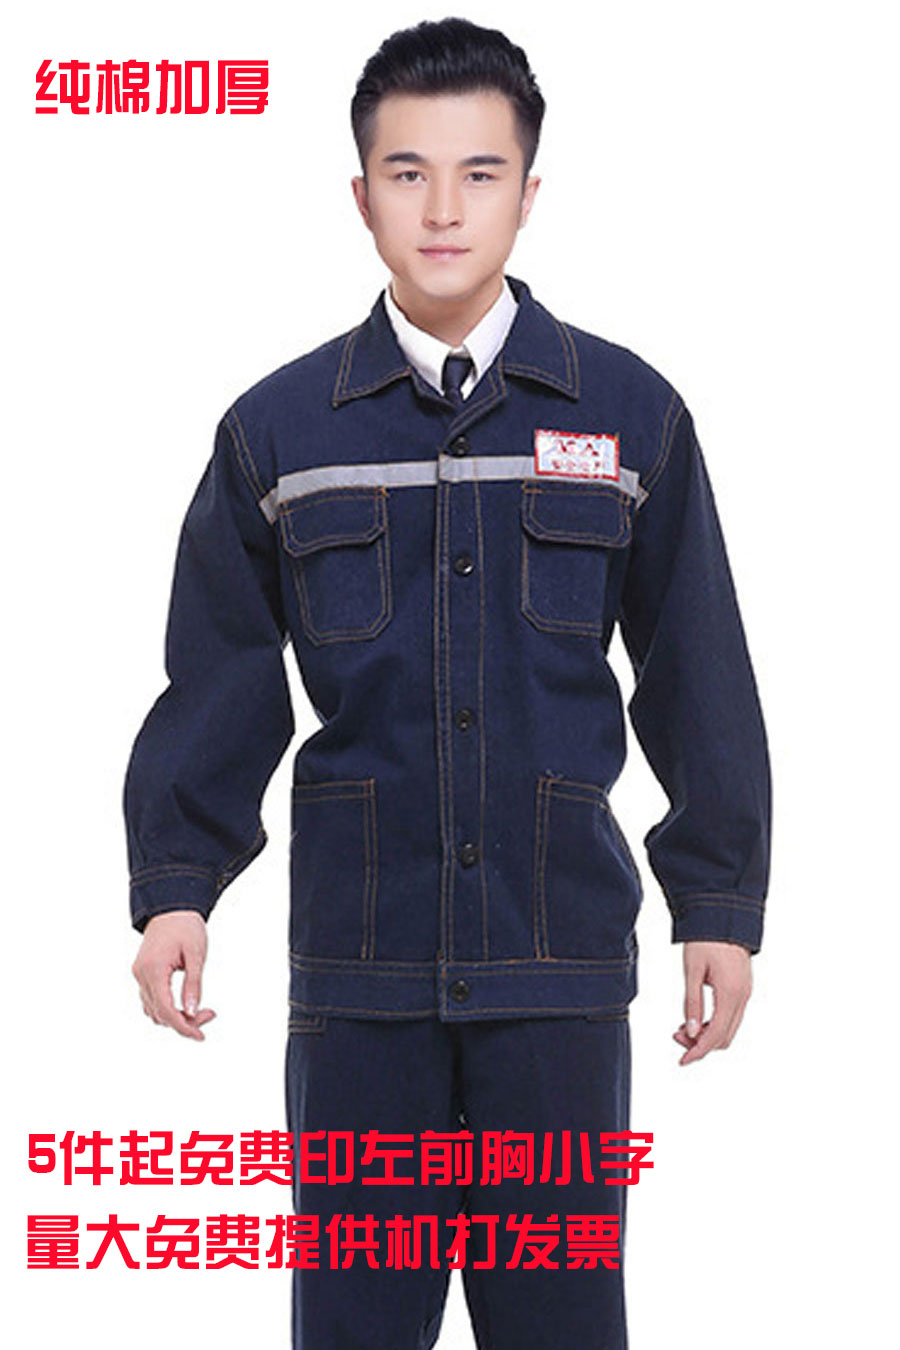 Cotton long sleeved denim work clothes repair welding engineering Coal Mine Service fire reflective clothes free printed and embroidered words